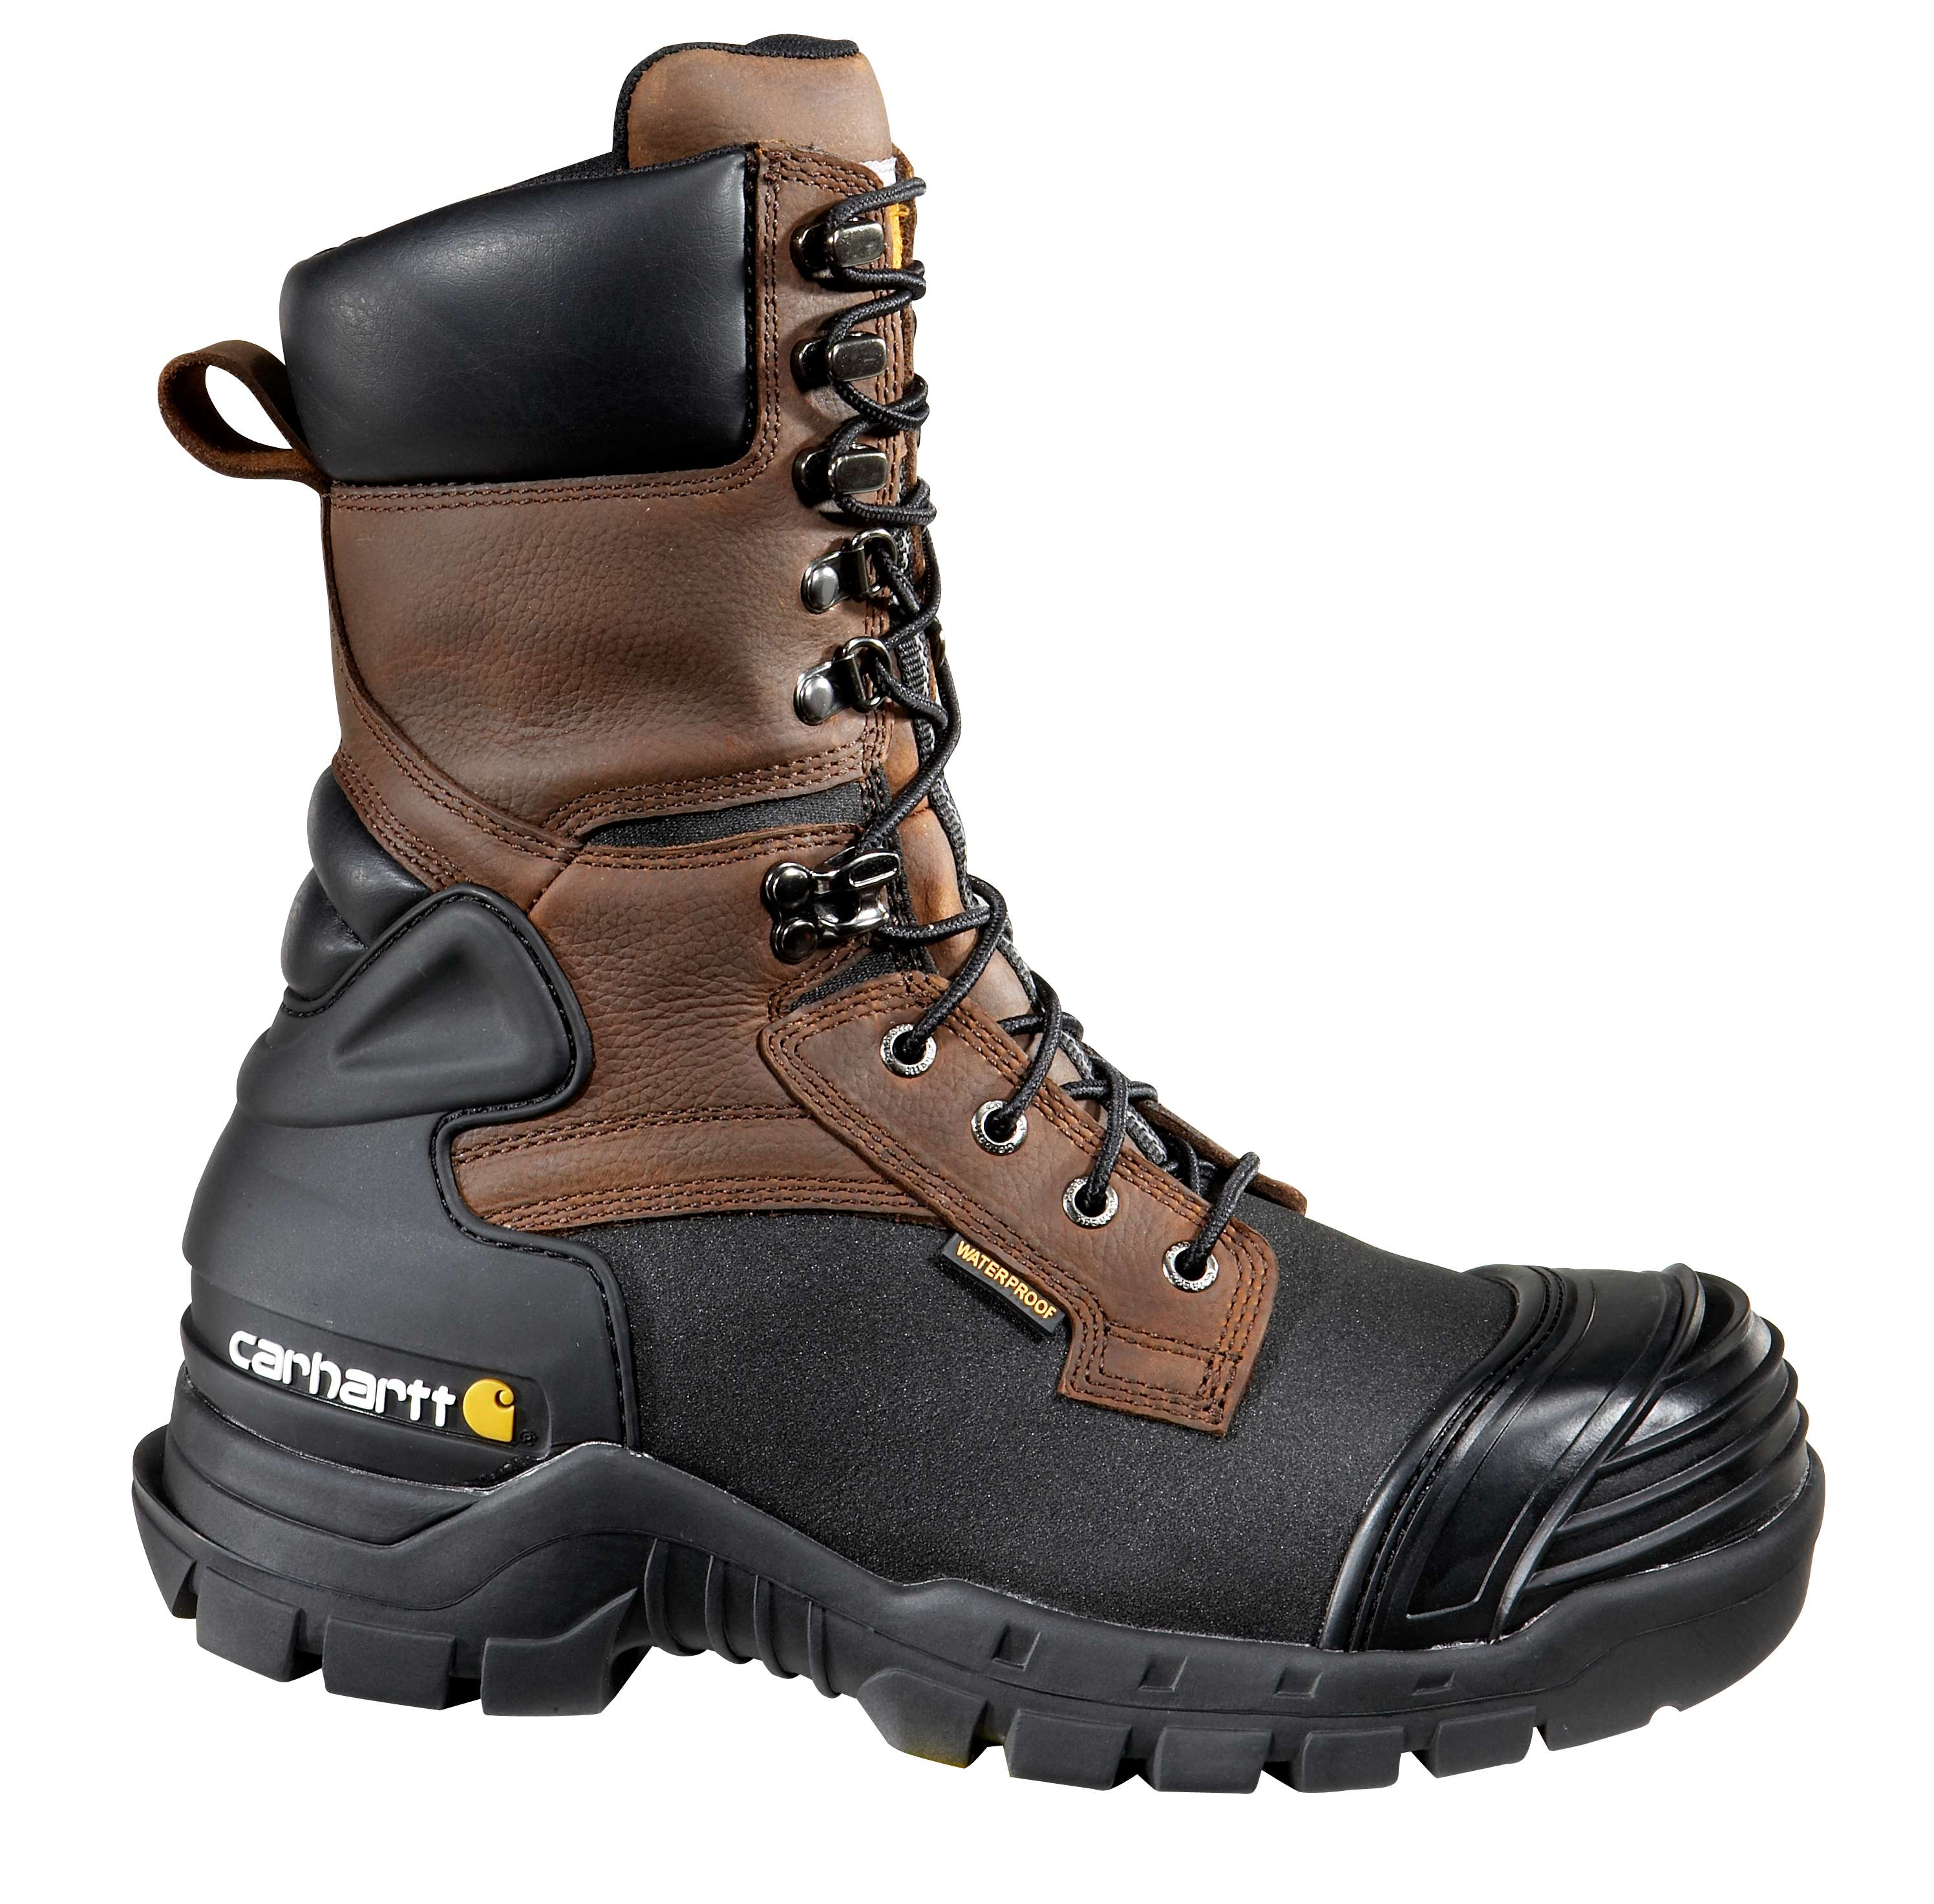 10-Inch Insulated Composite Toe Pac Boot